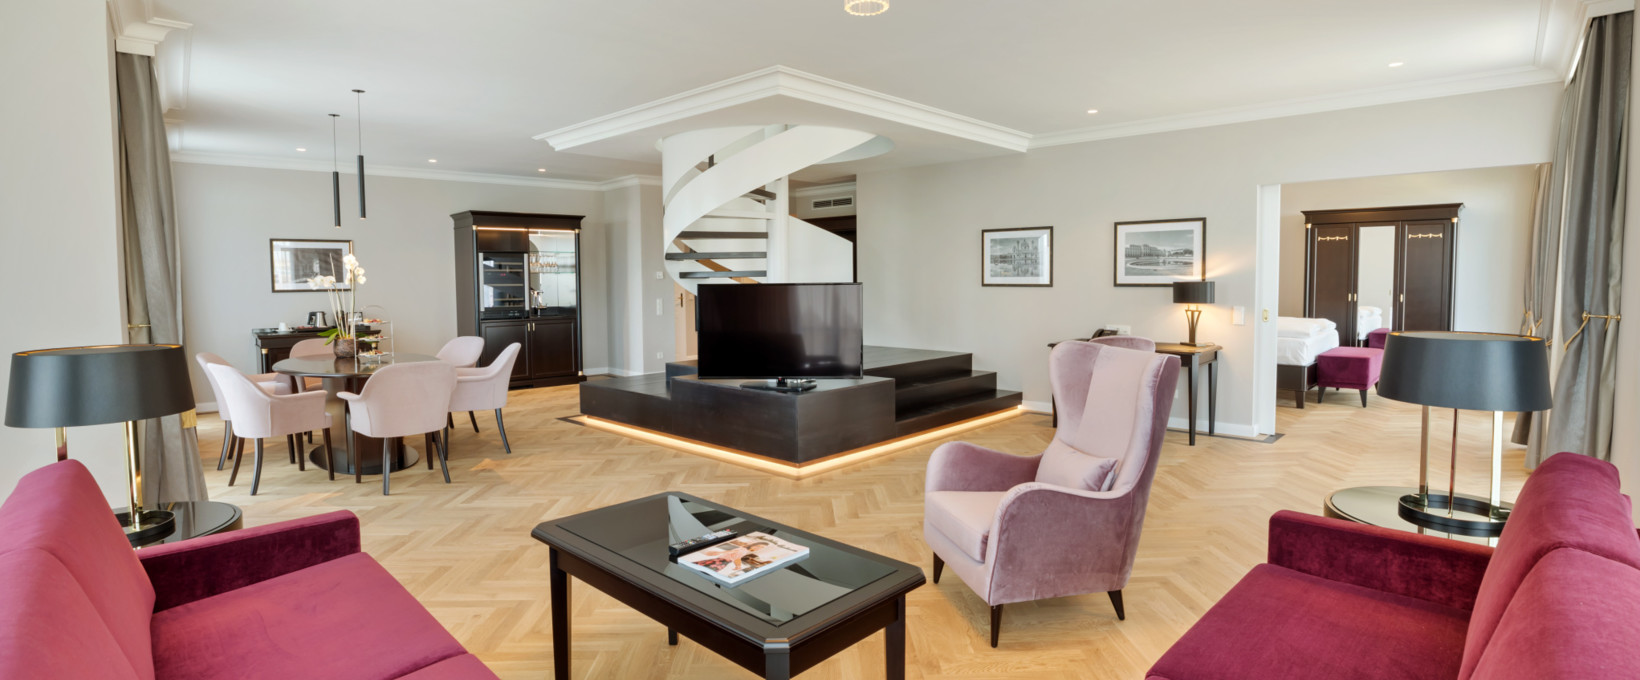 Kaiser Suite living room with seating area, TV and winding stairs | Parkhotel Schönbrunn in Vienna